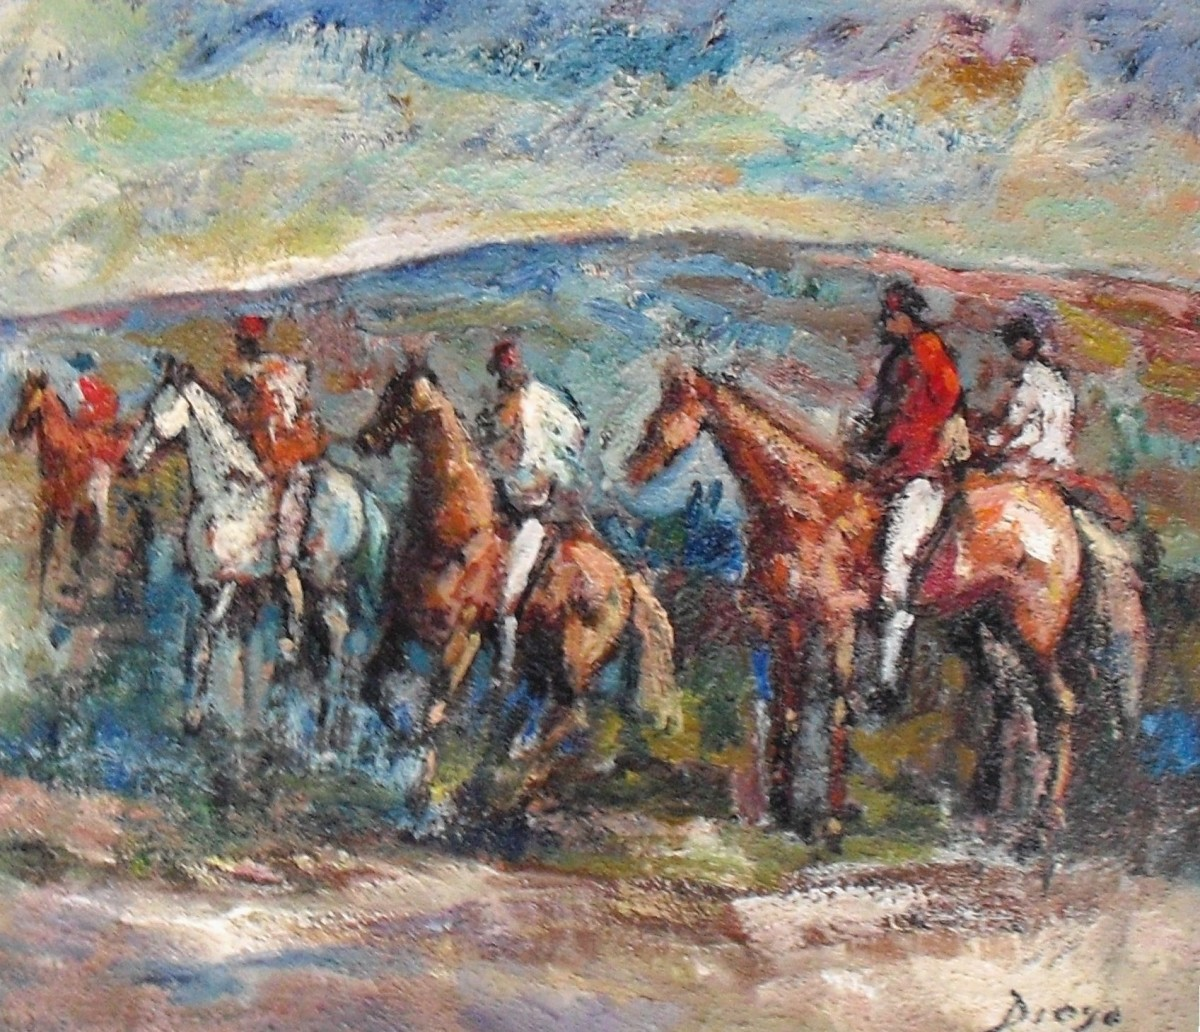 """""""Horses and Riders on a Hunt"""" #C59 by Antonio Diego Voci by Antonio Diego Voci  Image: Horses and Riders on a Hunt by DIEGO"""